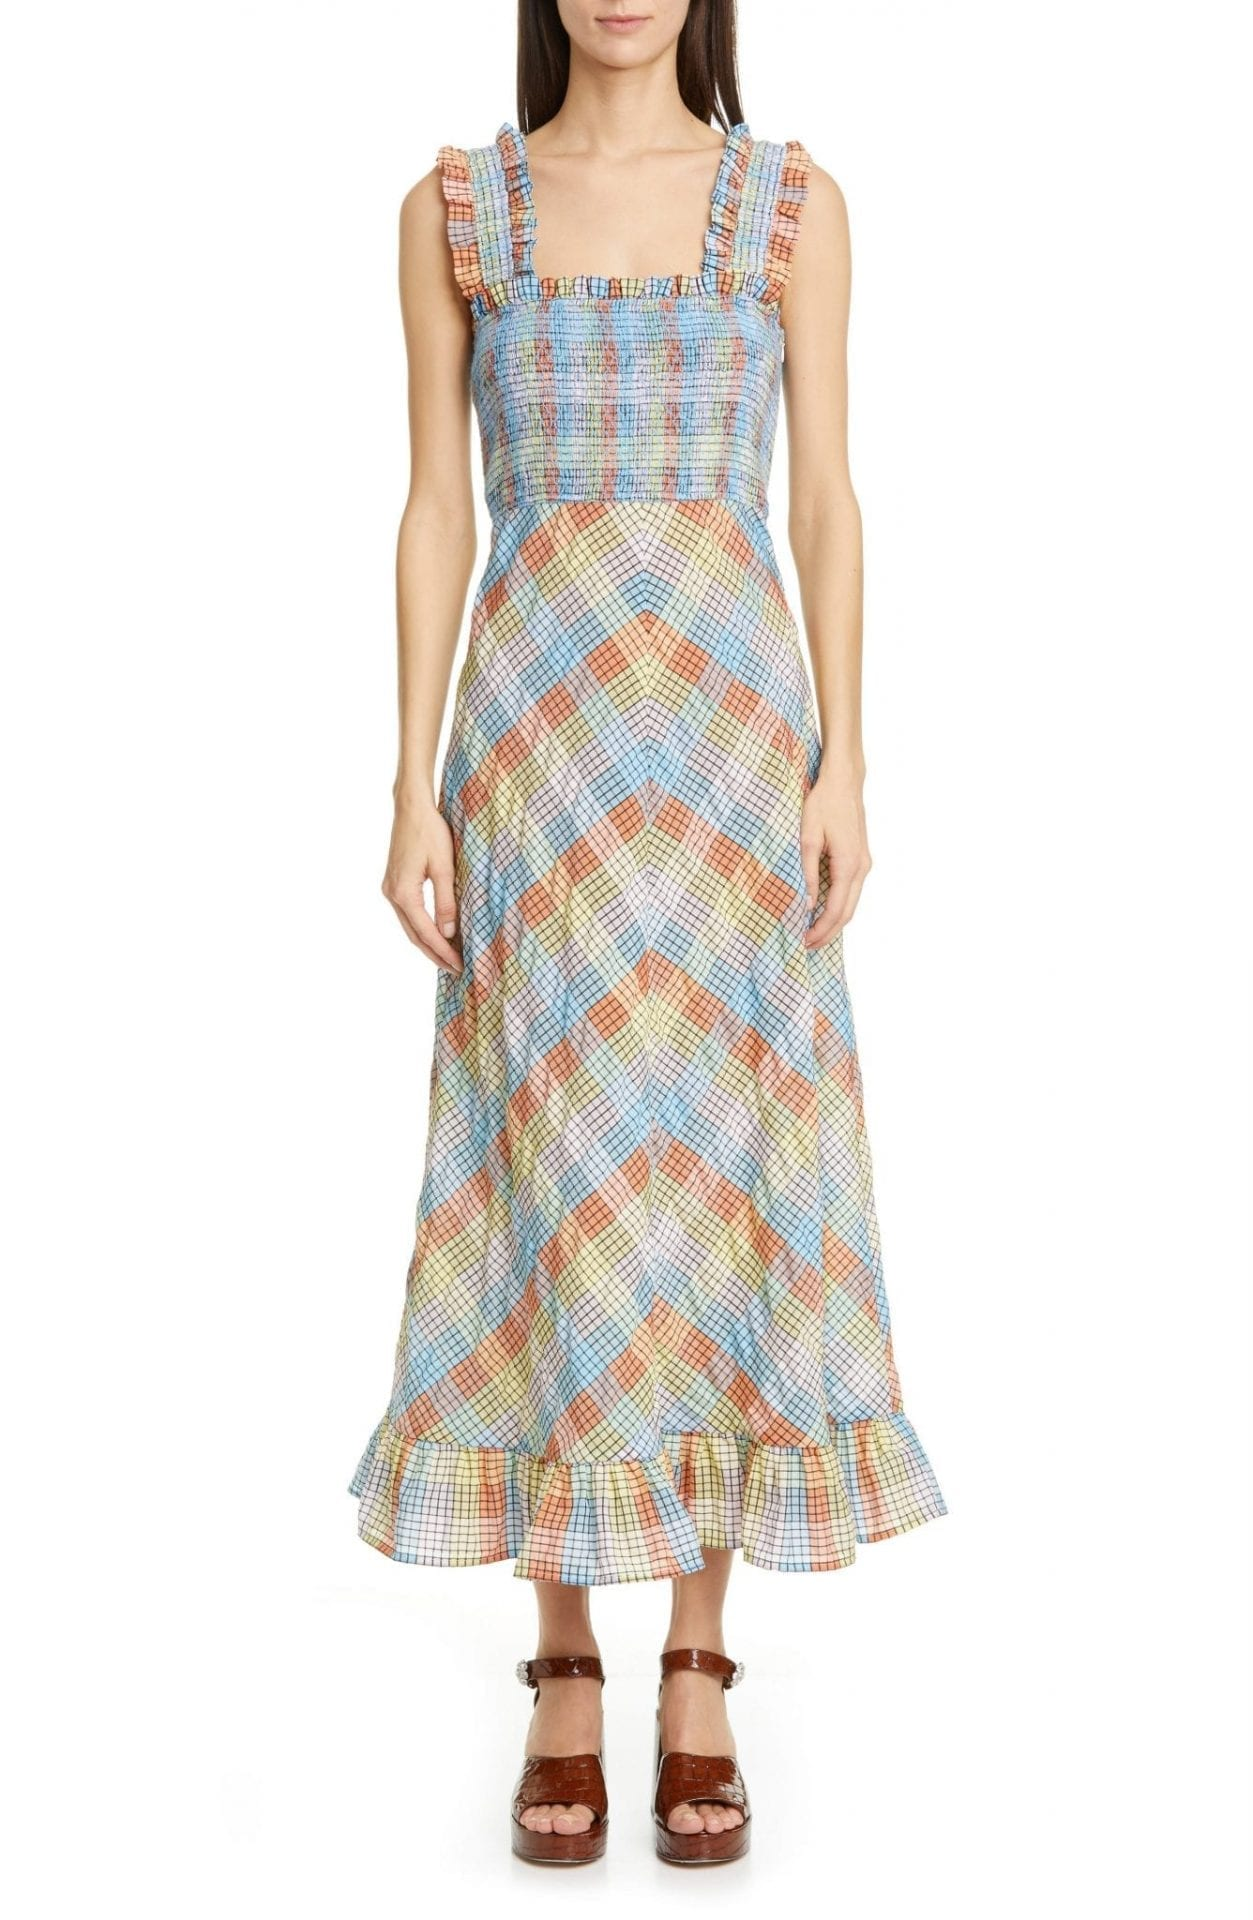 GANNI Plaid Smocked Seersucker Midi Sun Dress